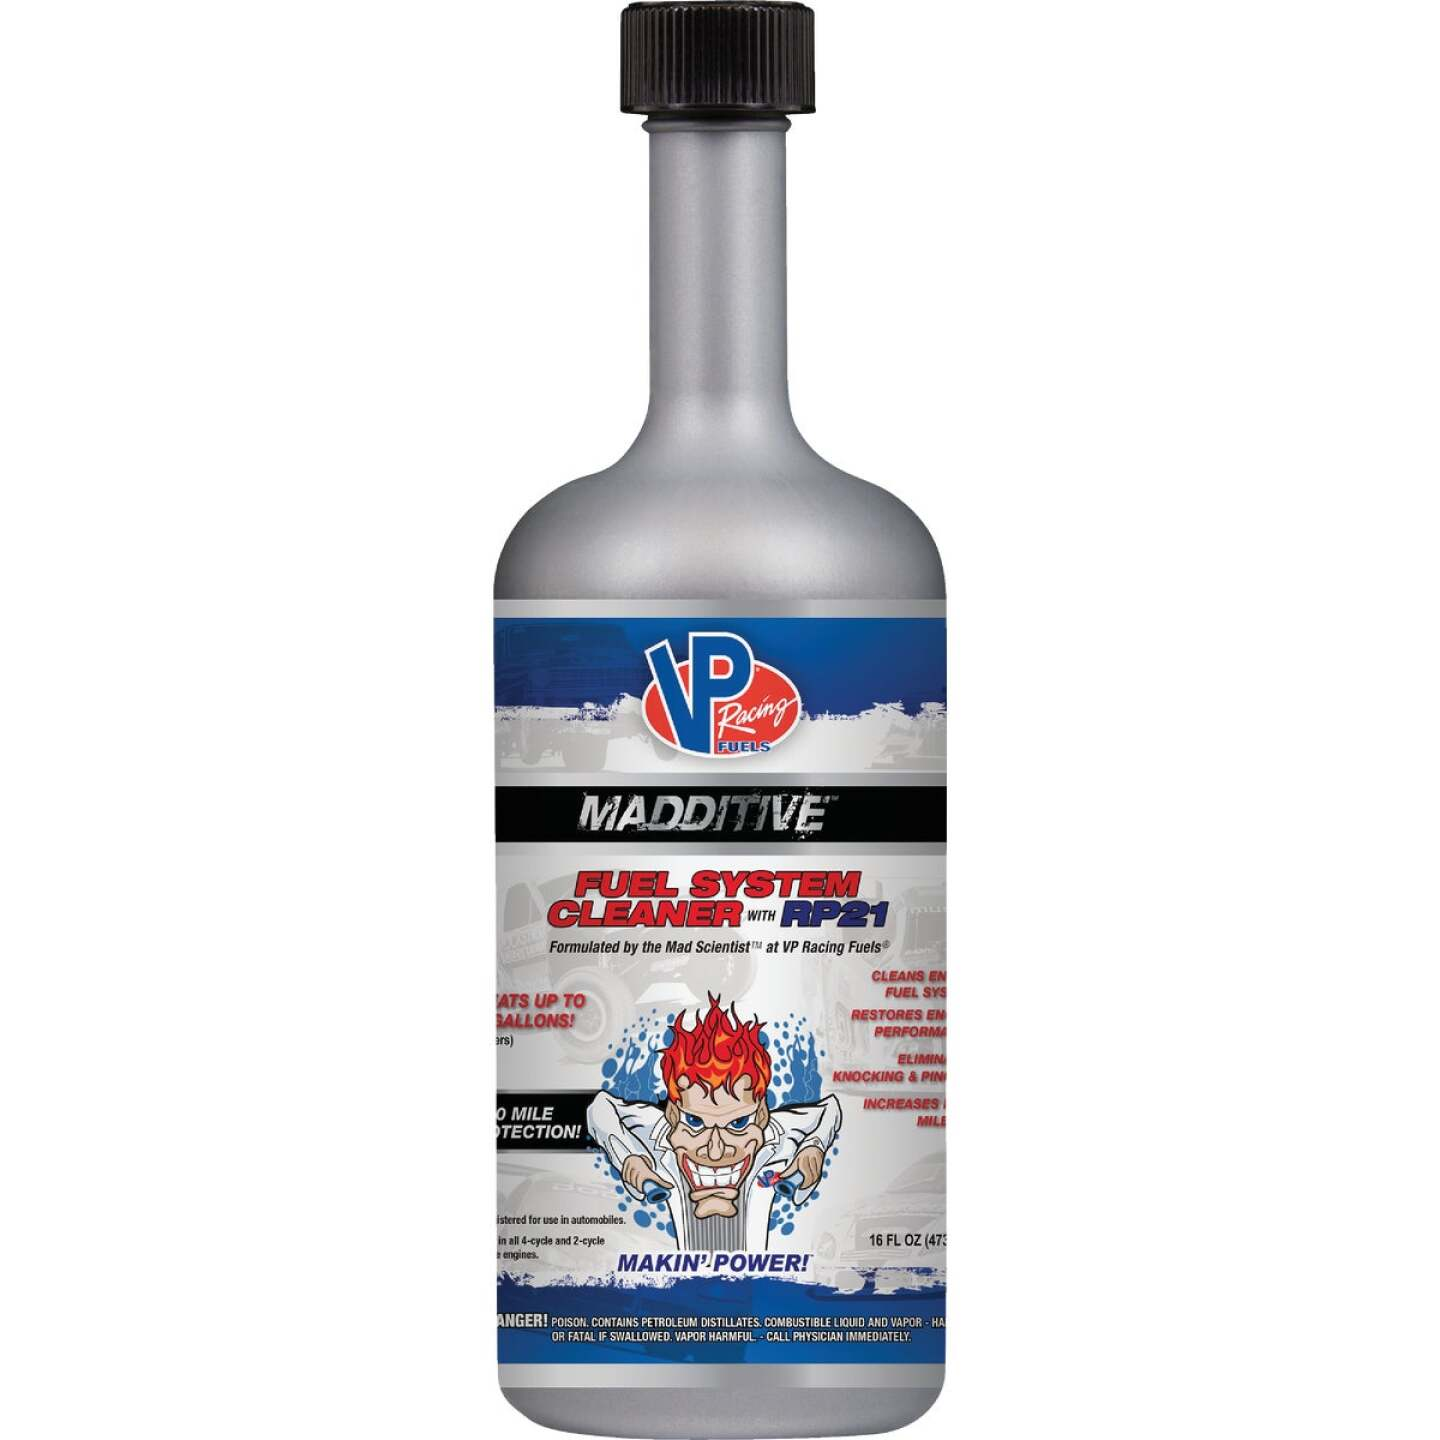 VP Racing Fuels MADDITIVE 16 Fl. Oz. Fuel System Cleaner Image 1